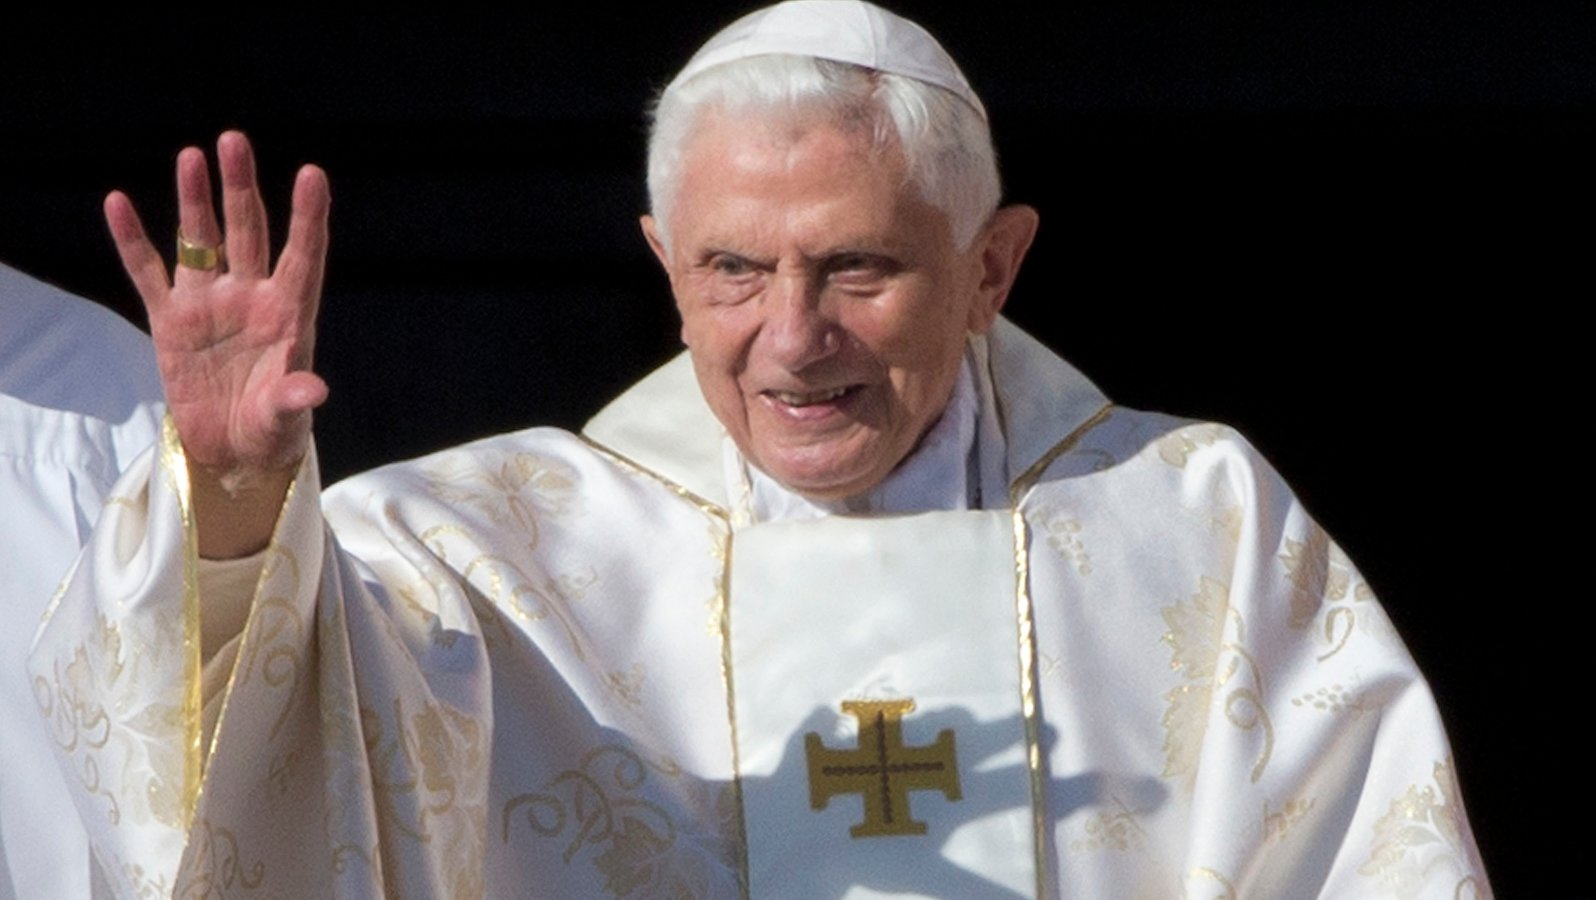 pope benedict sex abuse charges in New Hampshire